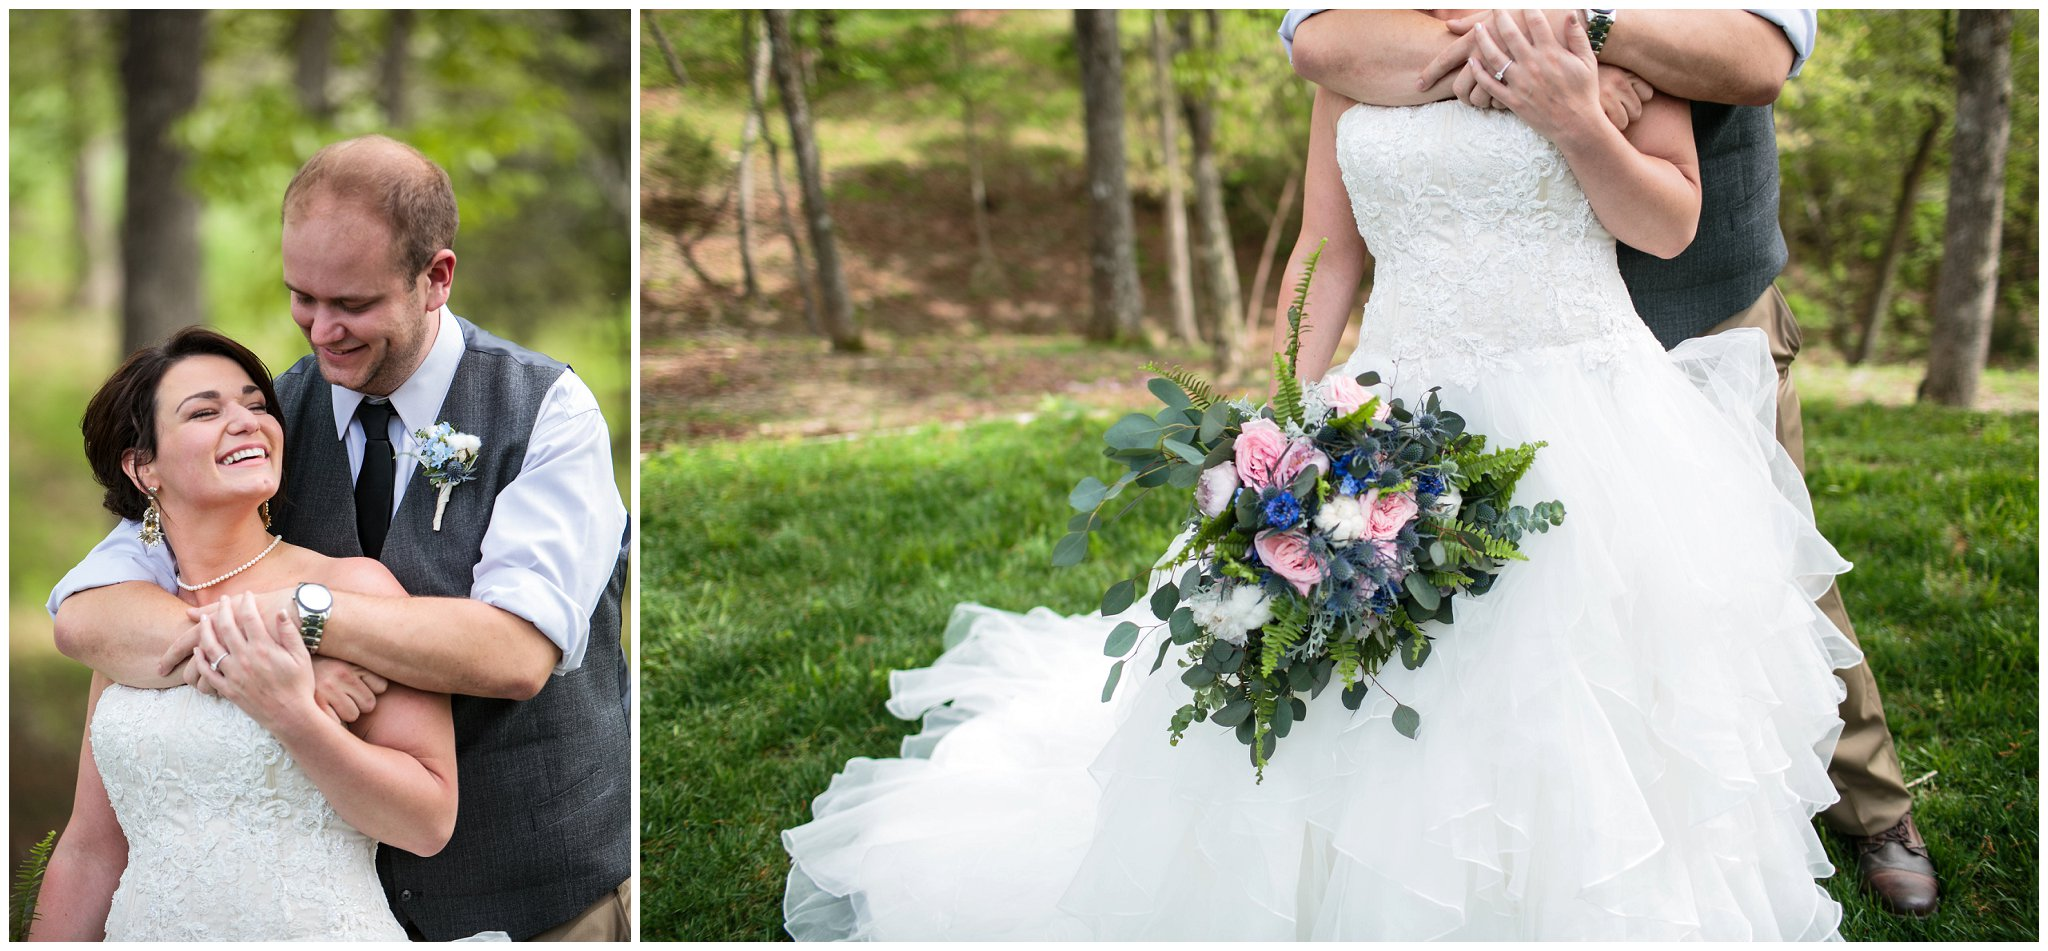 melissa-timm-florist-knoxville-tn-flowers-abby-malone-photos-crescent-bend-florist-affordable_6947.jpg